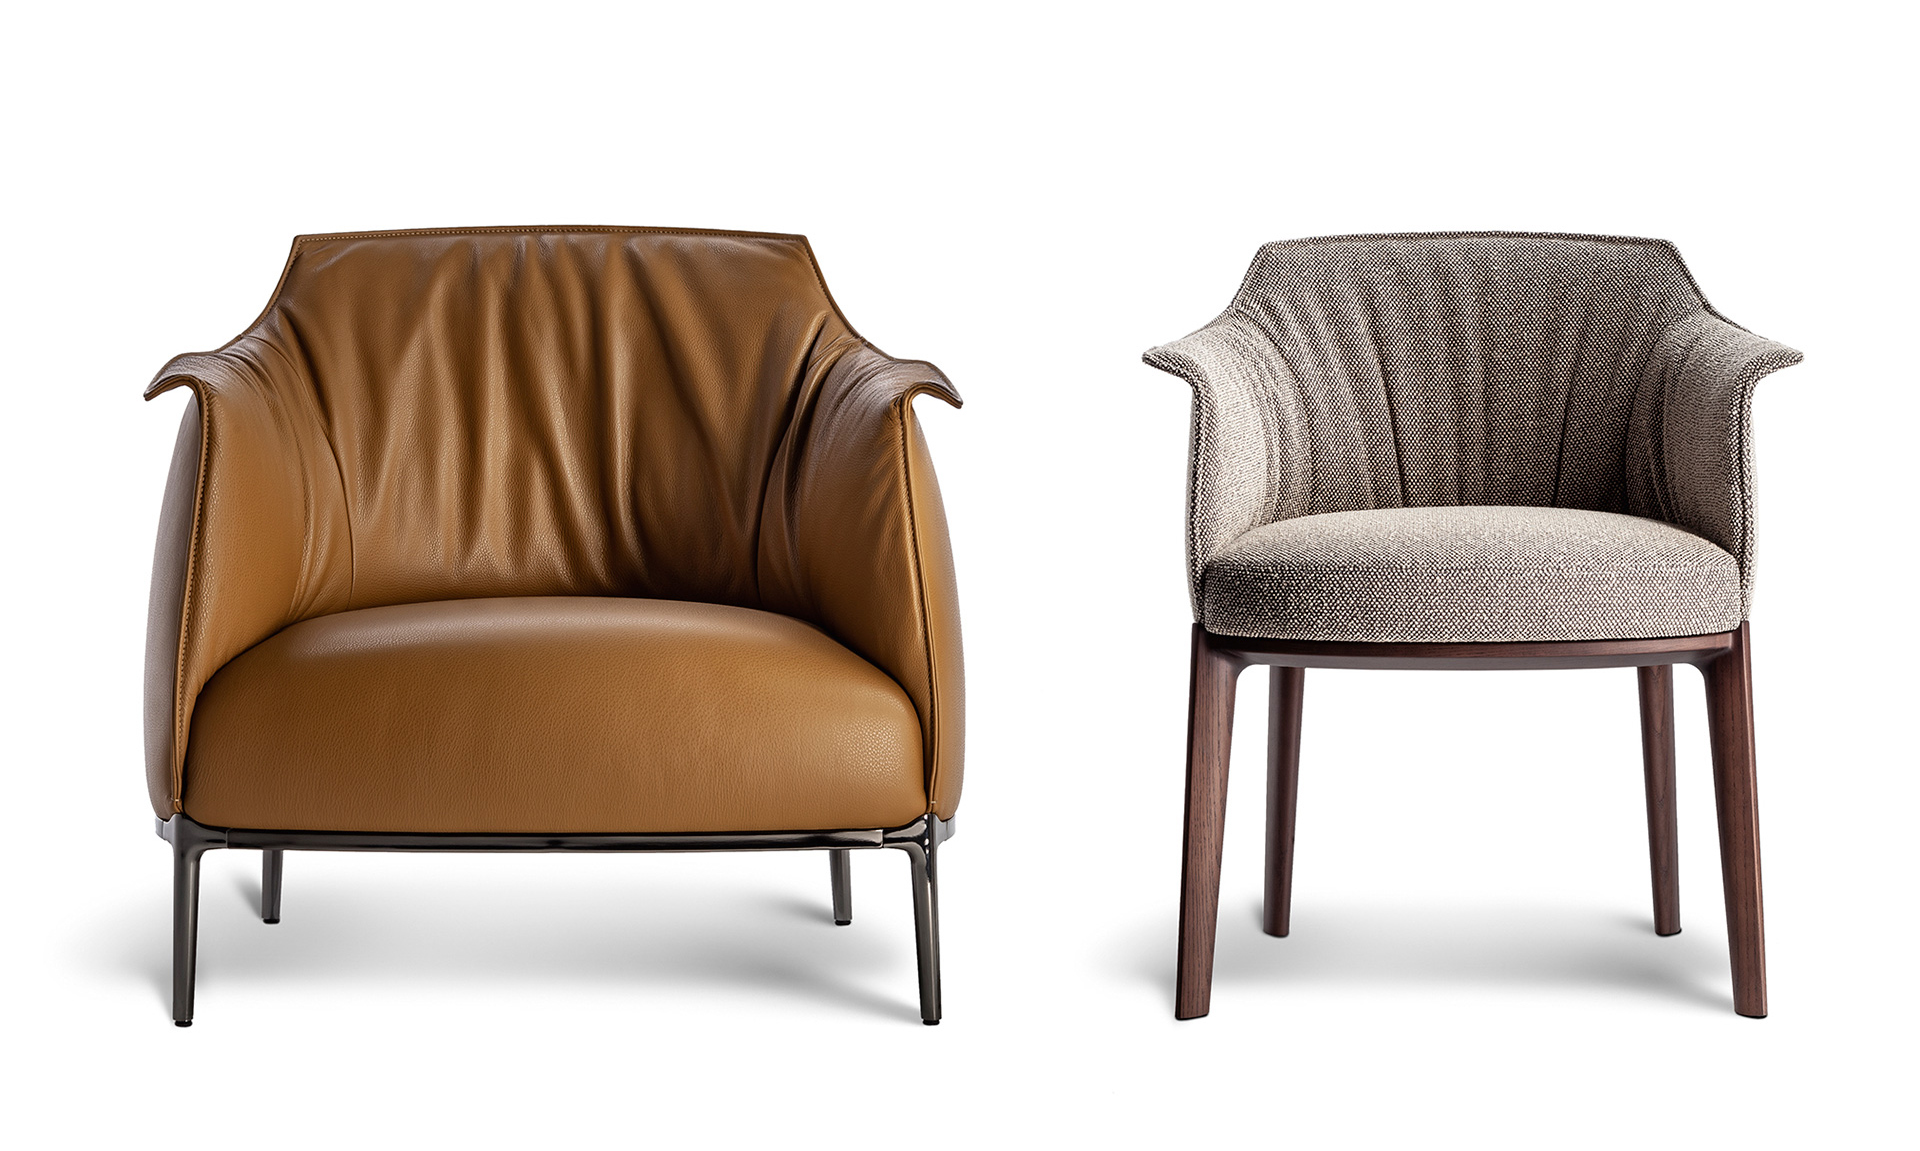 The Archibald by Jean-Marie Massaud combines substance and form – the comfortable design of the armchairs makes them ideal for meditation and relaxation| Cross Border Conversations| Rajiv Parekh, Jean-Marie Massaud | STIR